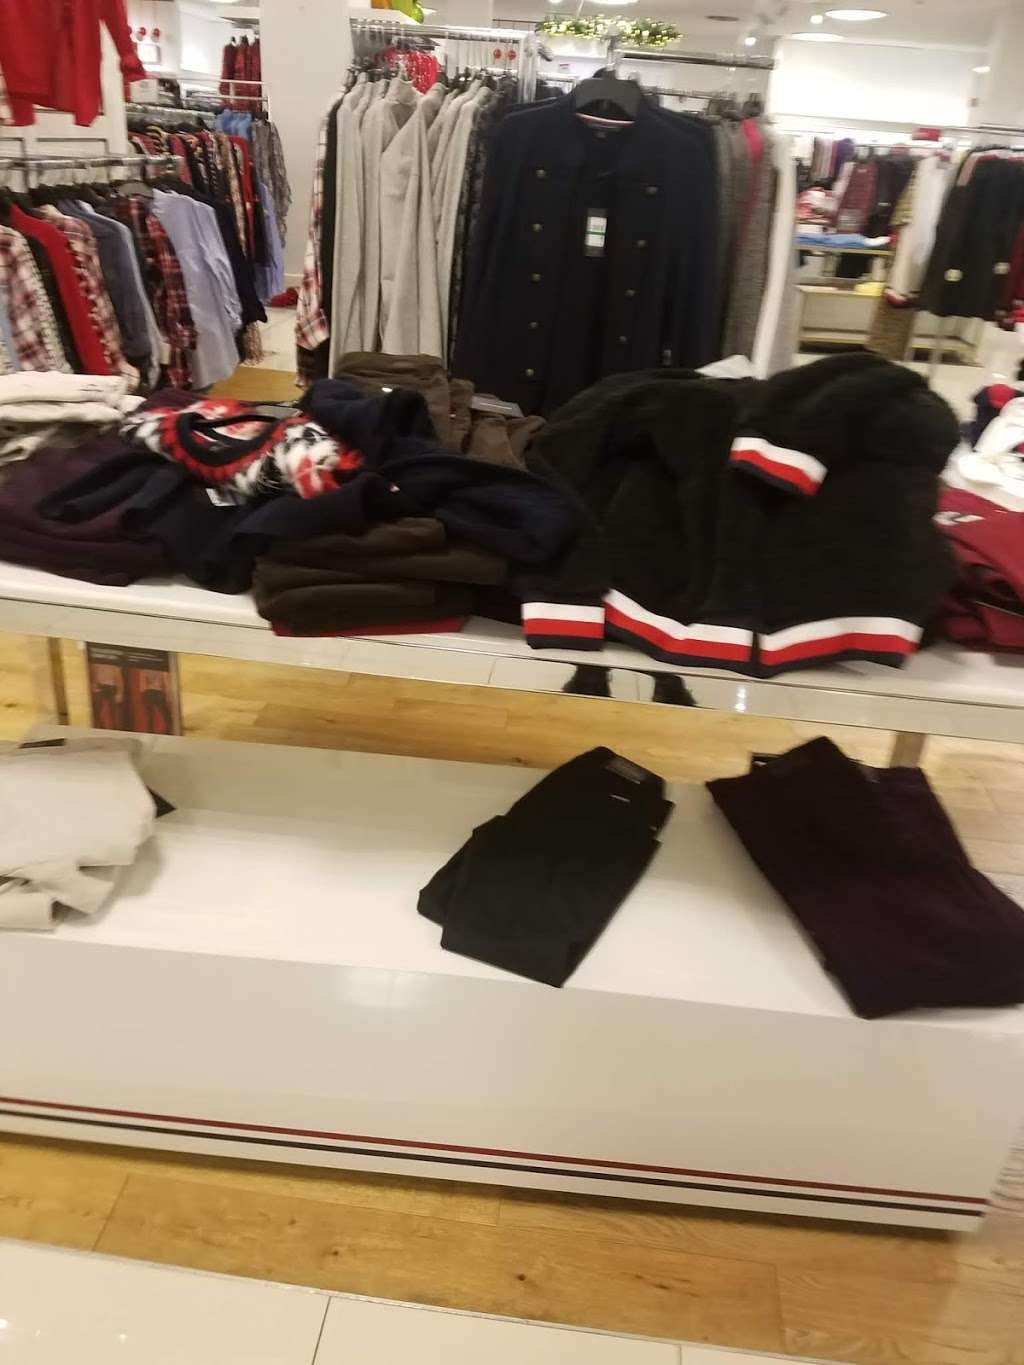 Macys Mens Store - clothing store  | Photo 9 of 9 | Address: 69 Green Acres Rd S, Valley Stream, NY 11581, USA | Phone: (516) 561-6100